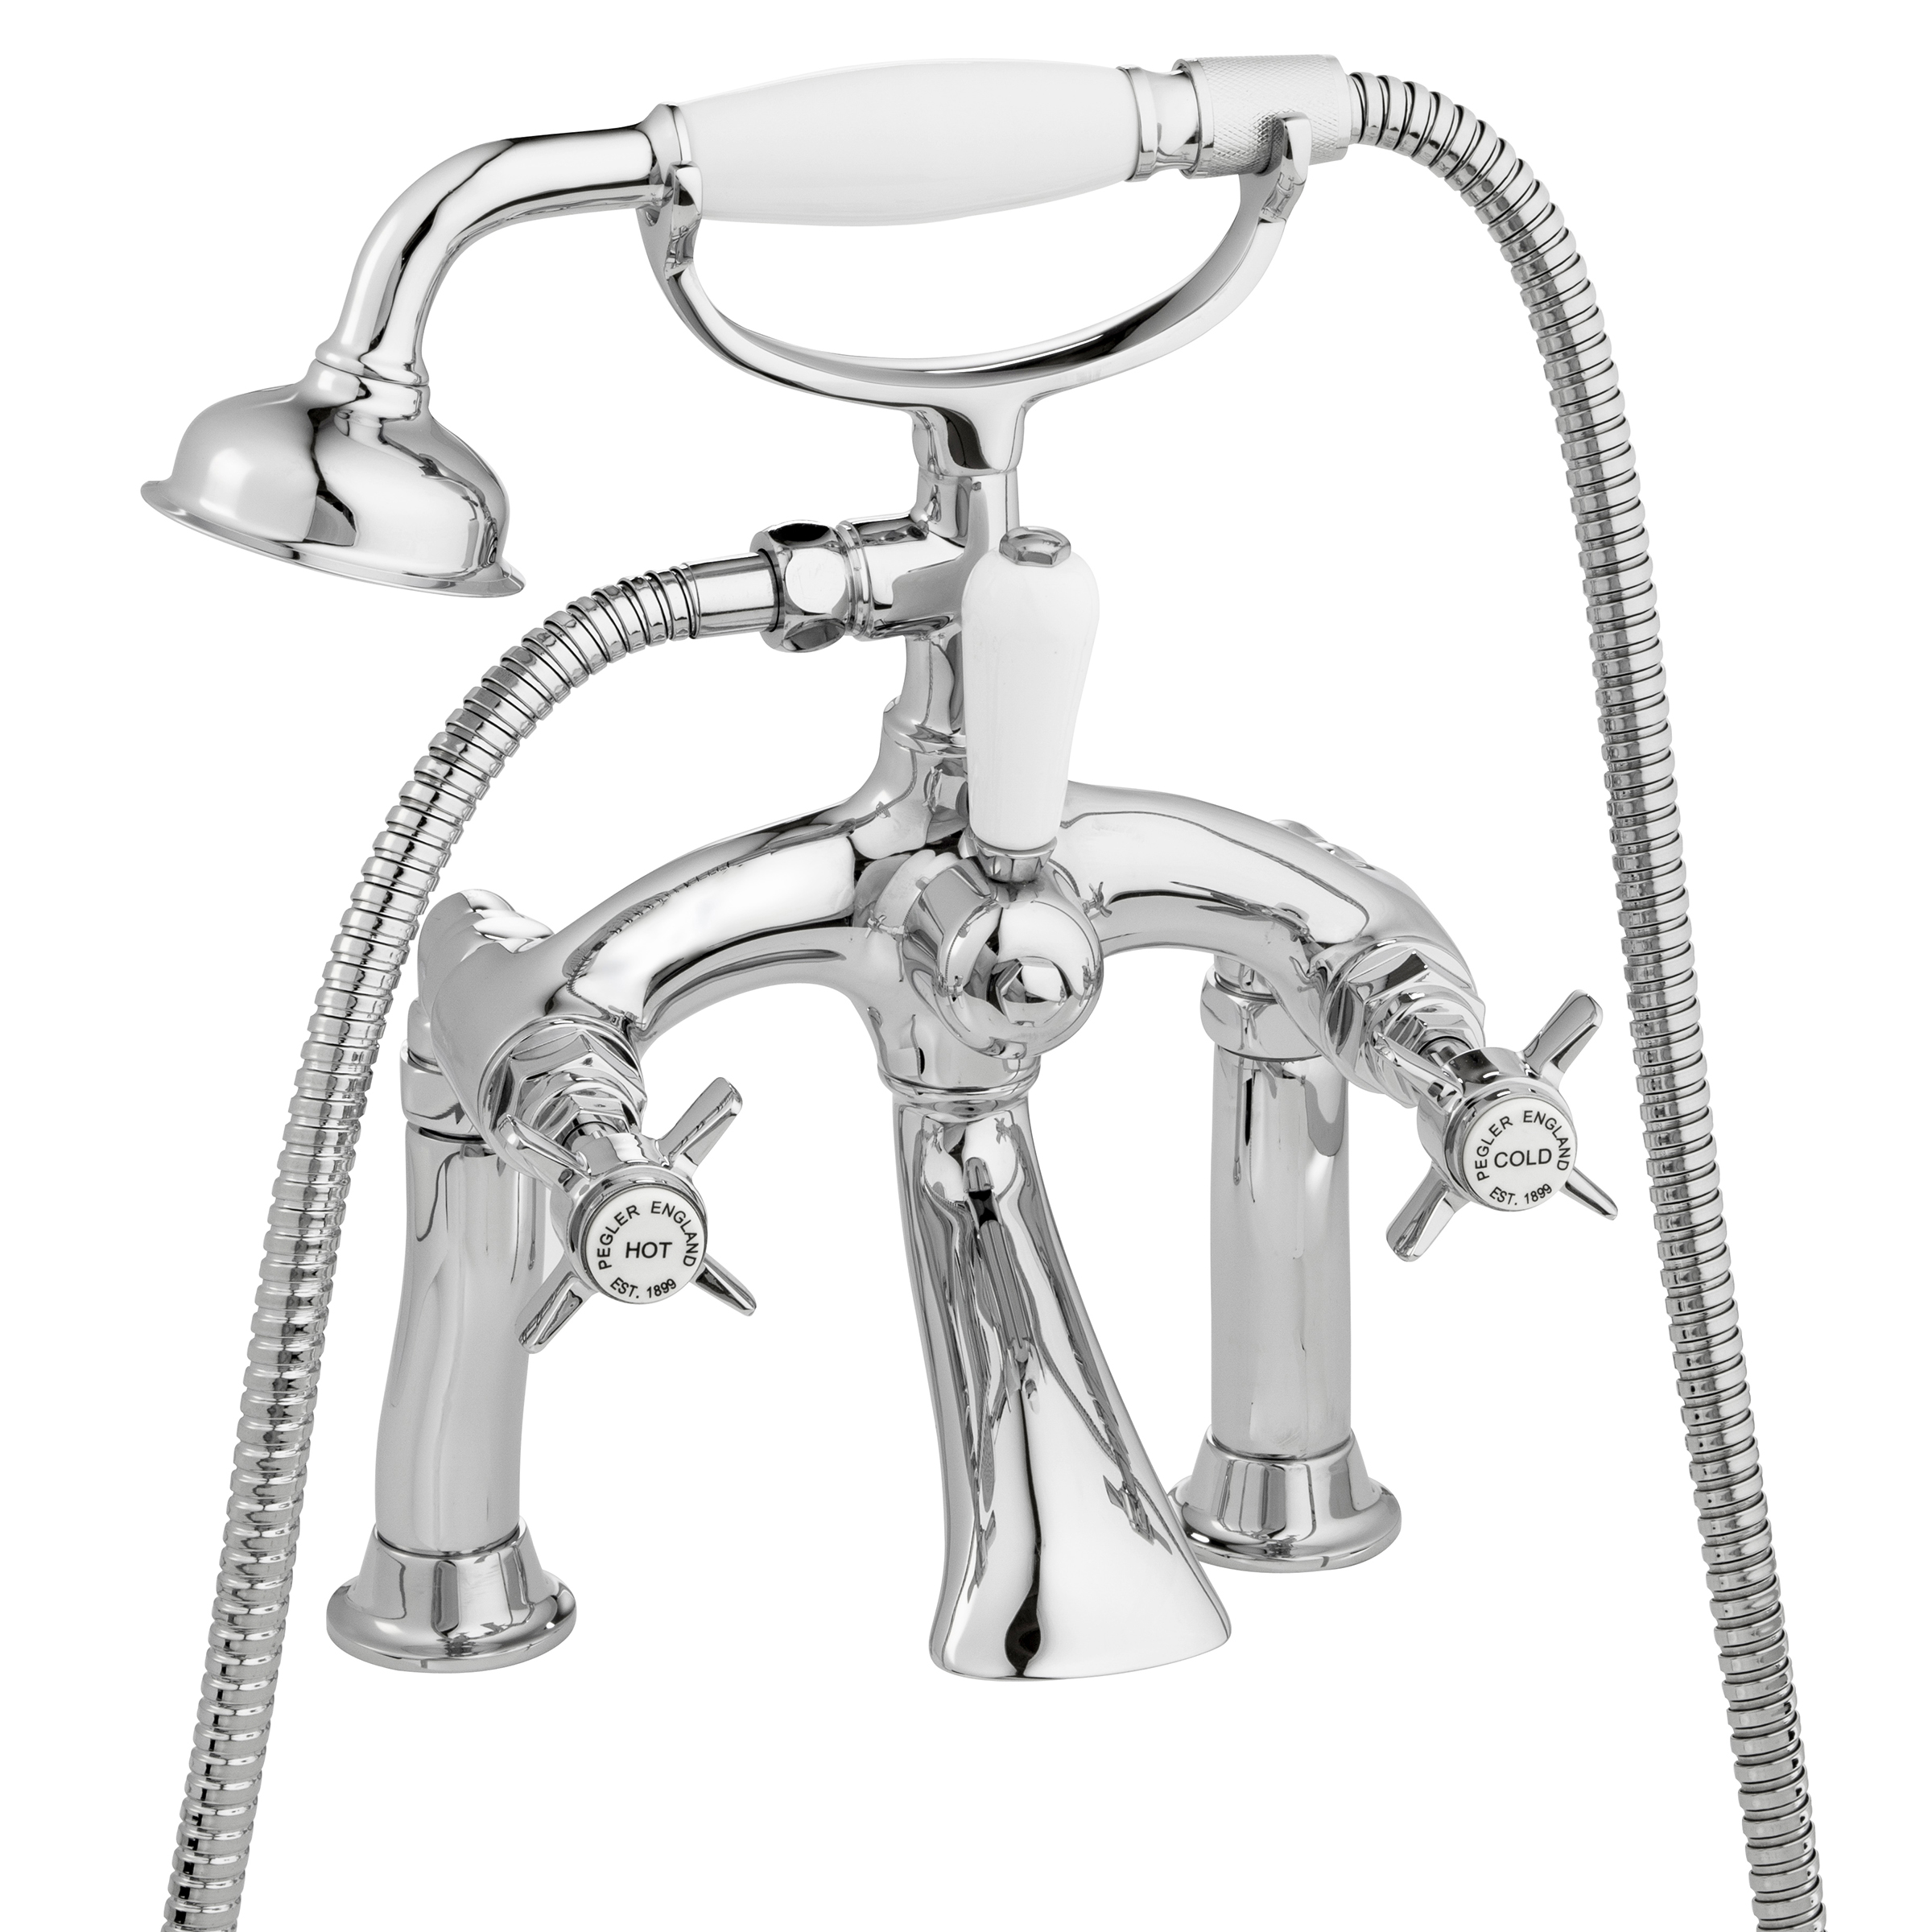 pegler yorkshire sequel pillar mounted bath shower mixer complete with shower kit